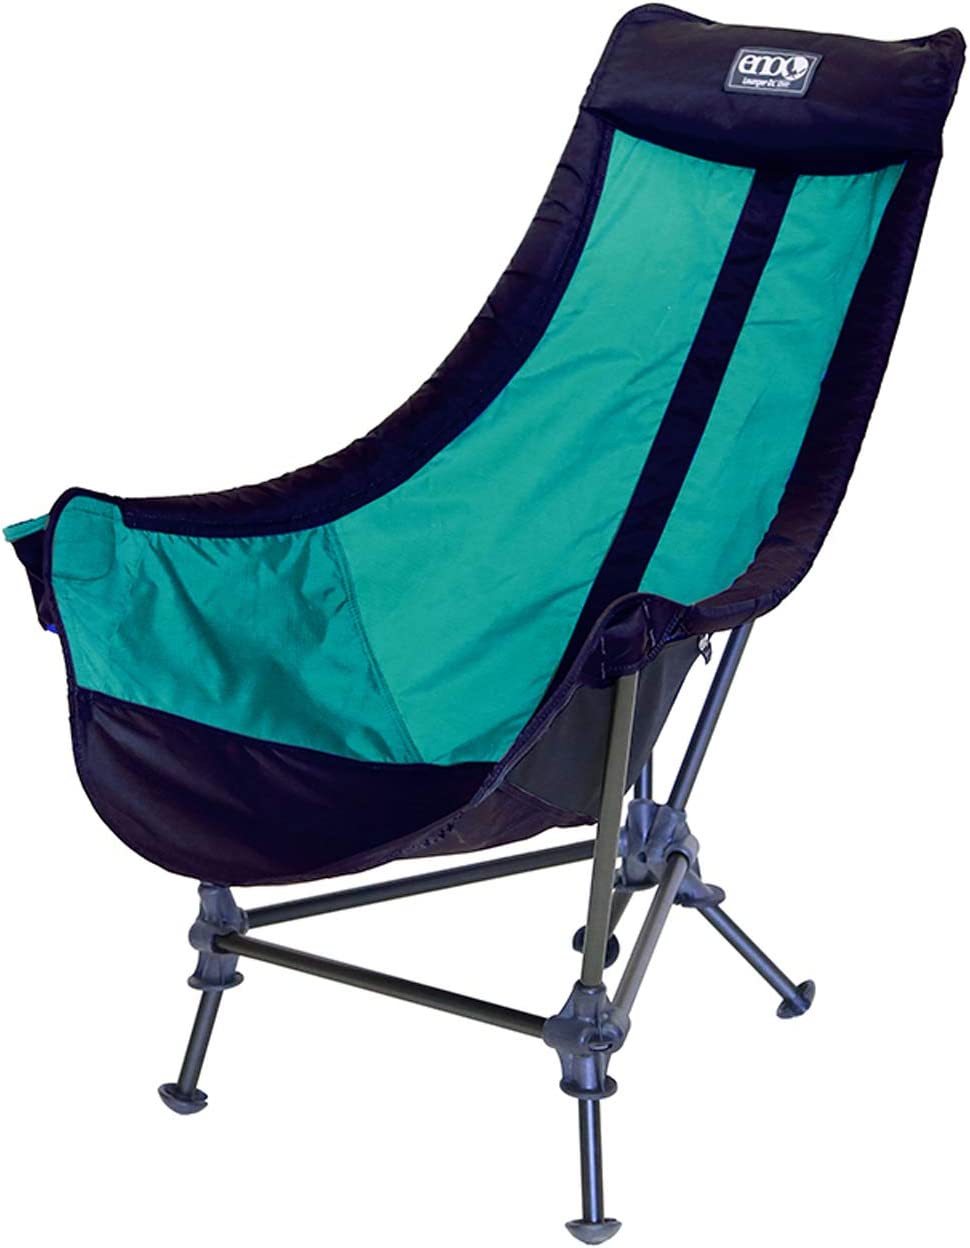 ENO, Eagles Nest Outfitters Lounger DL Camping Chair, Outdoor Lounge Chair